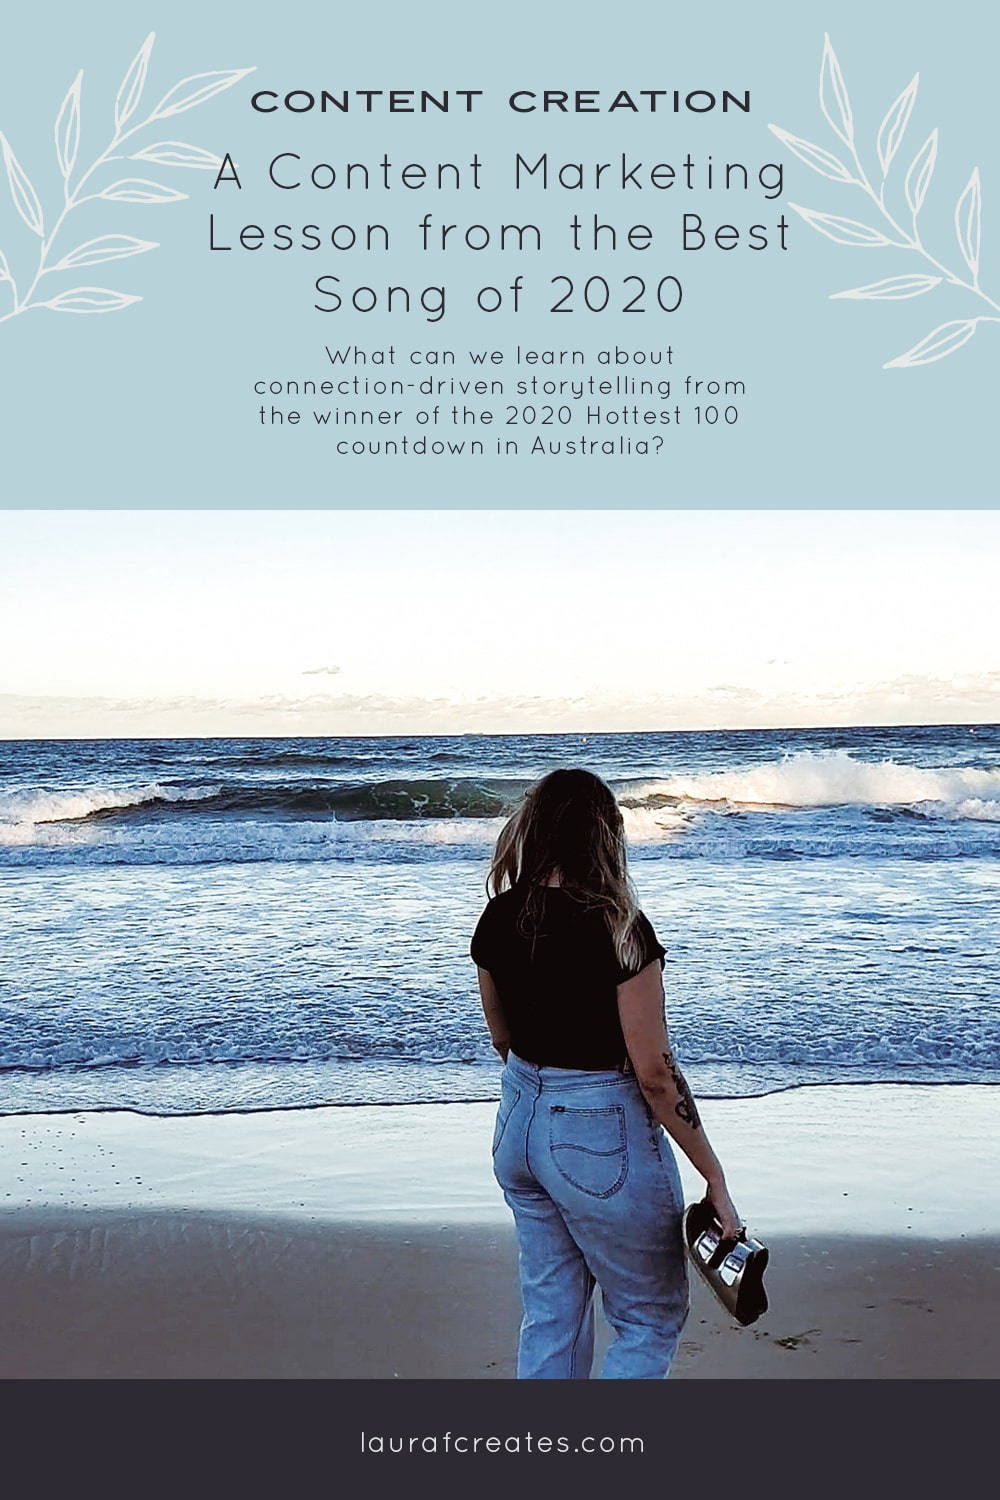 A content marketing lesson from the best song of 2020